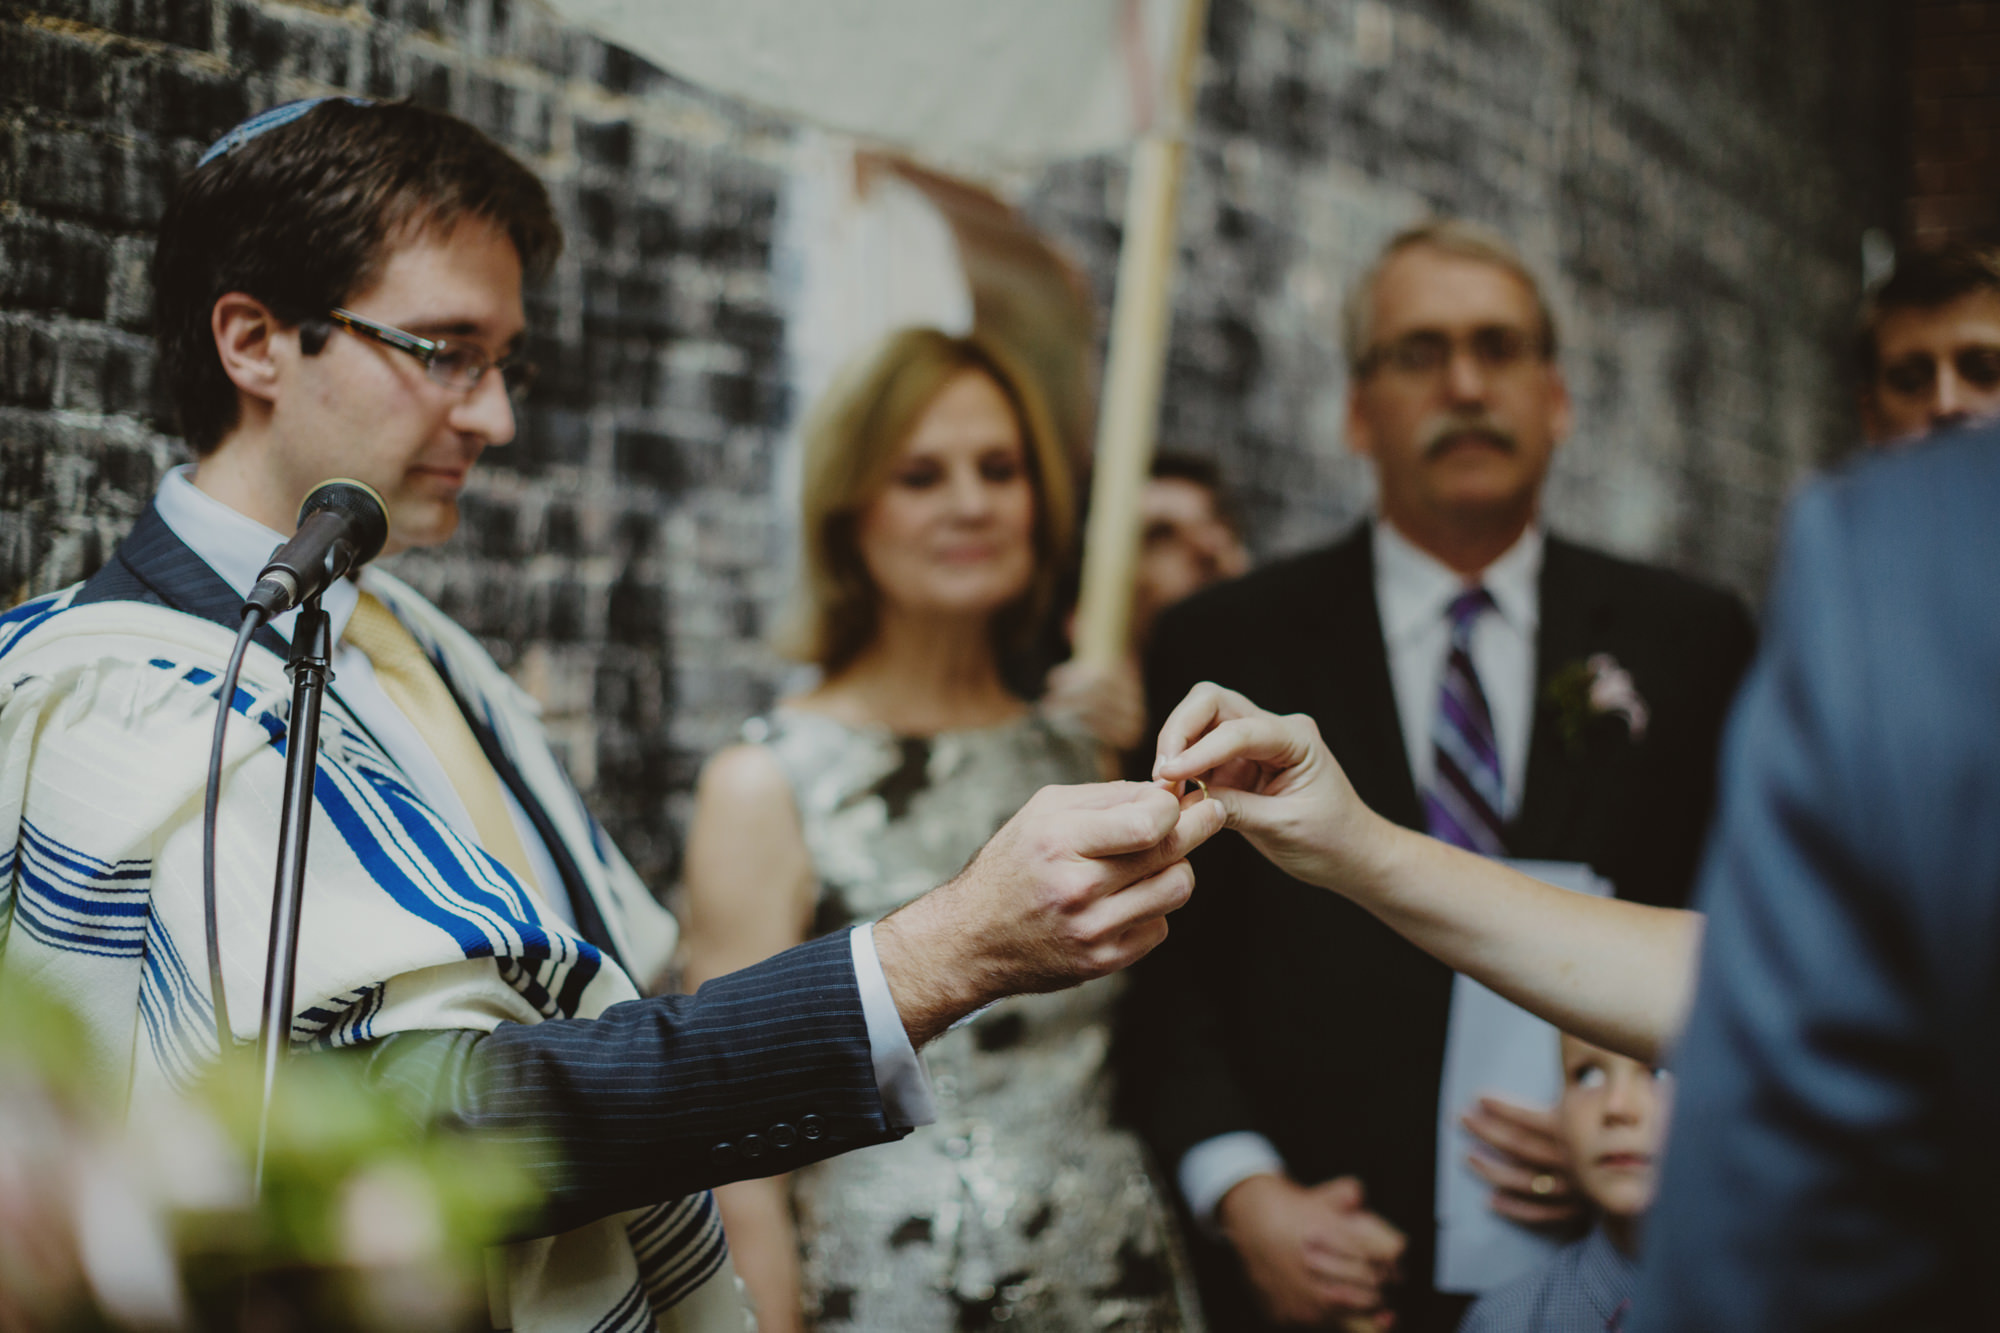 brooklyn_wedding_flatbushfarm_sammblake_034.jpg